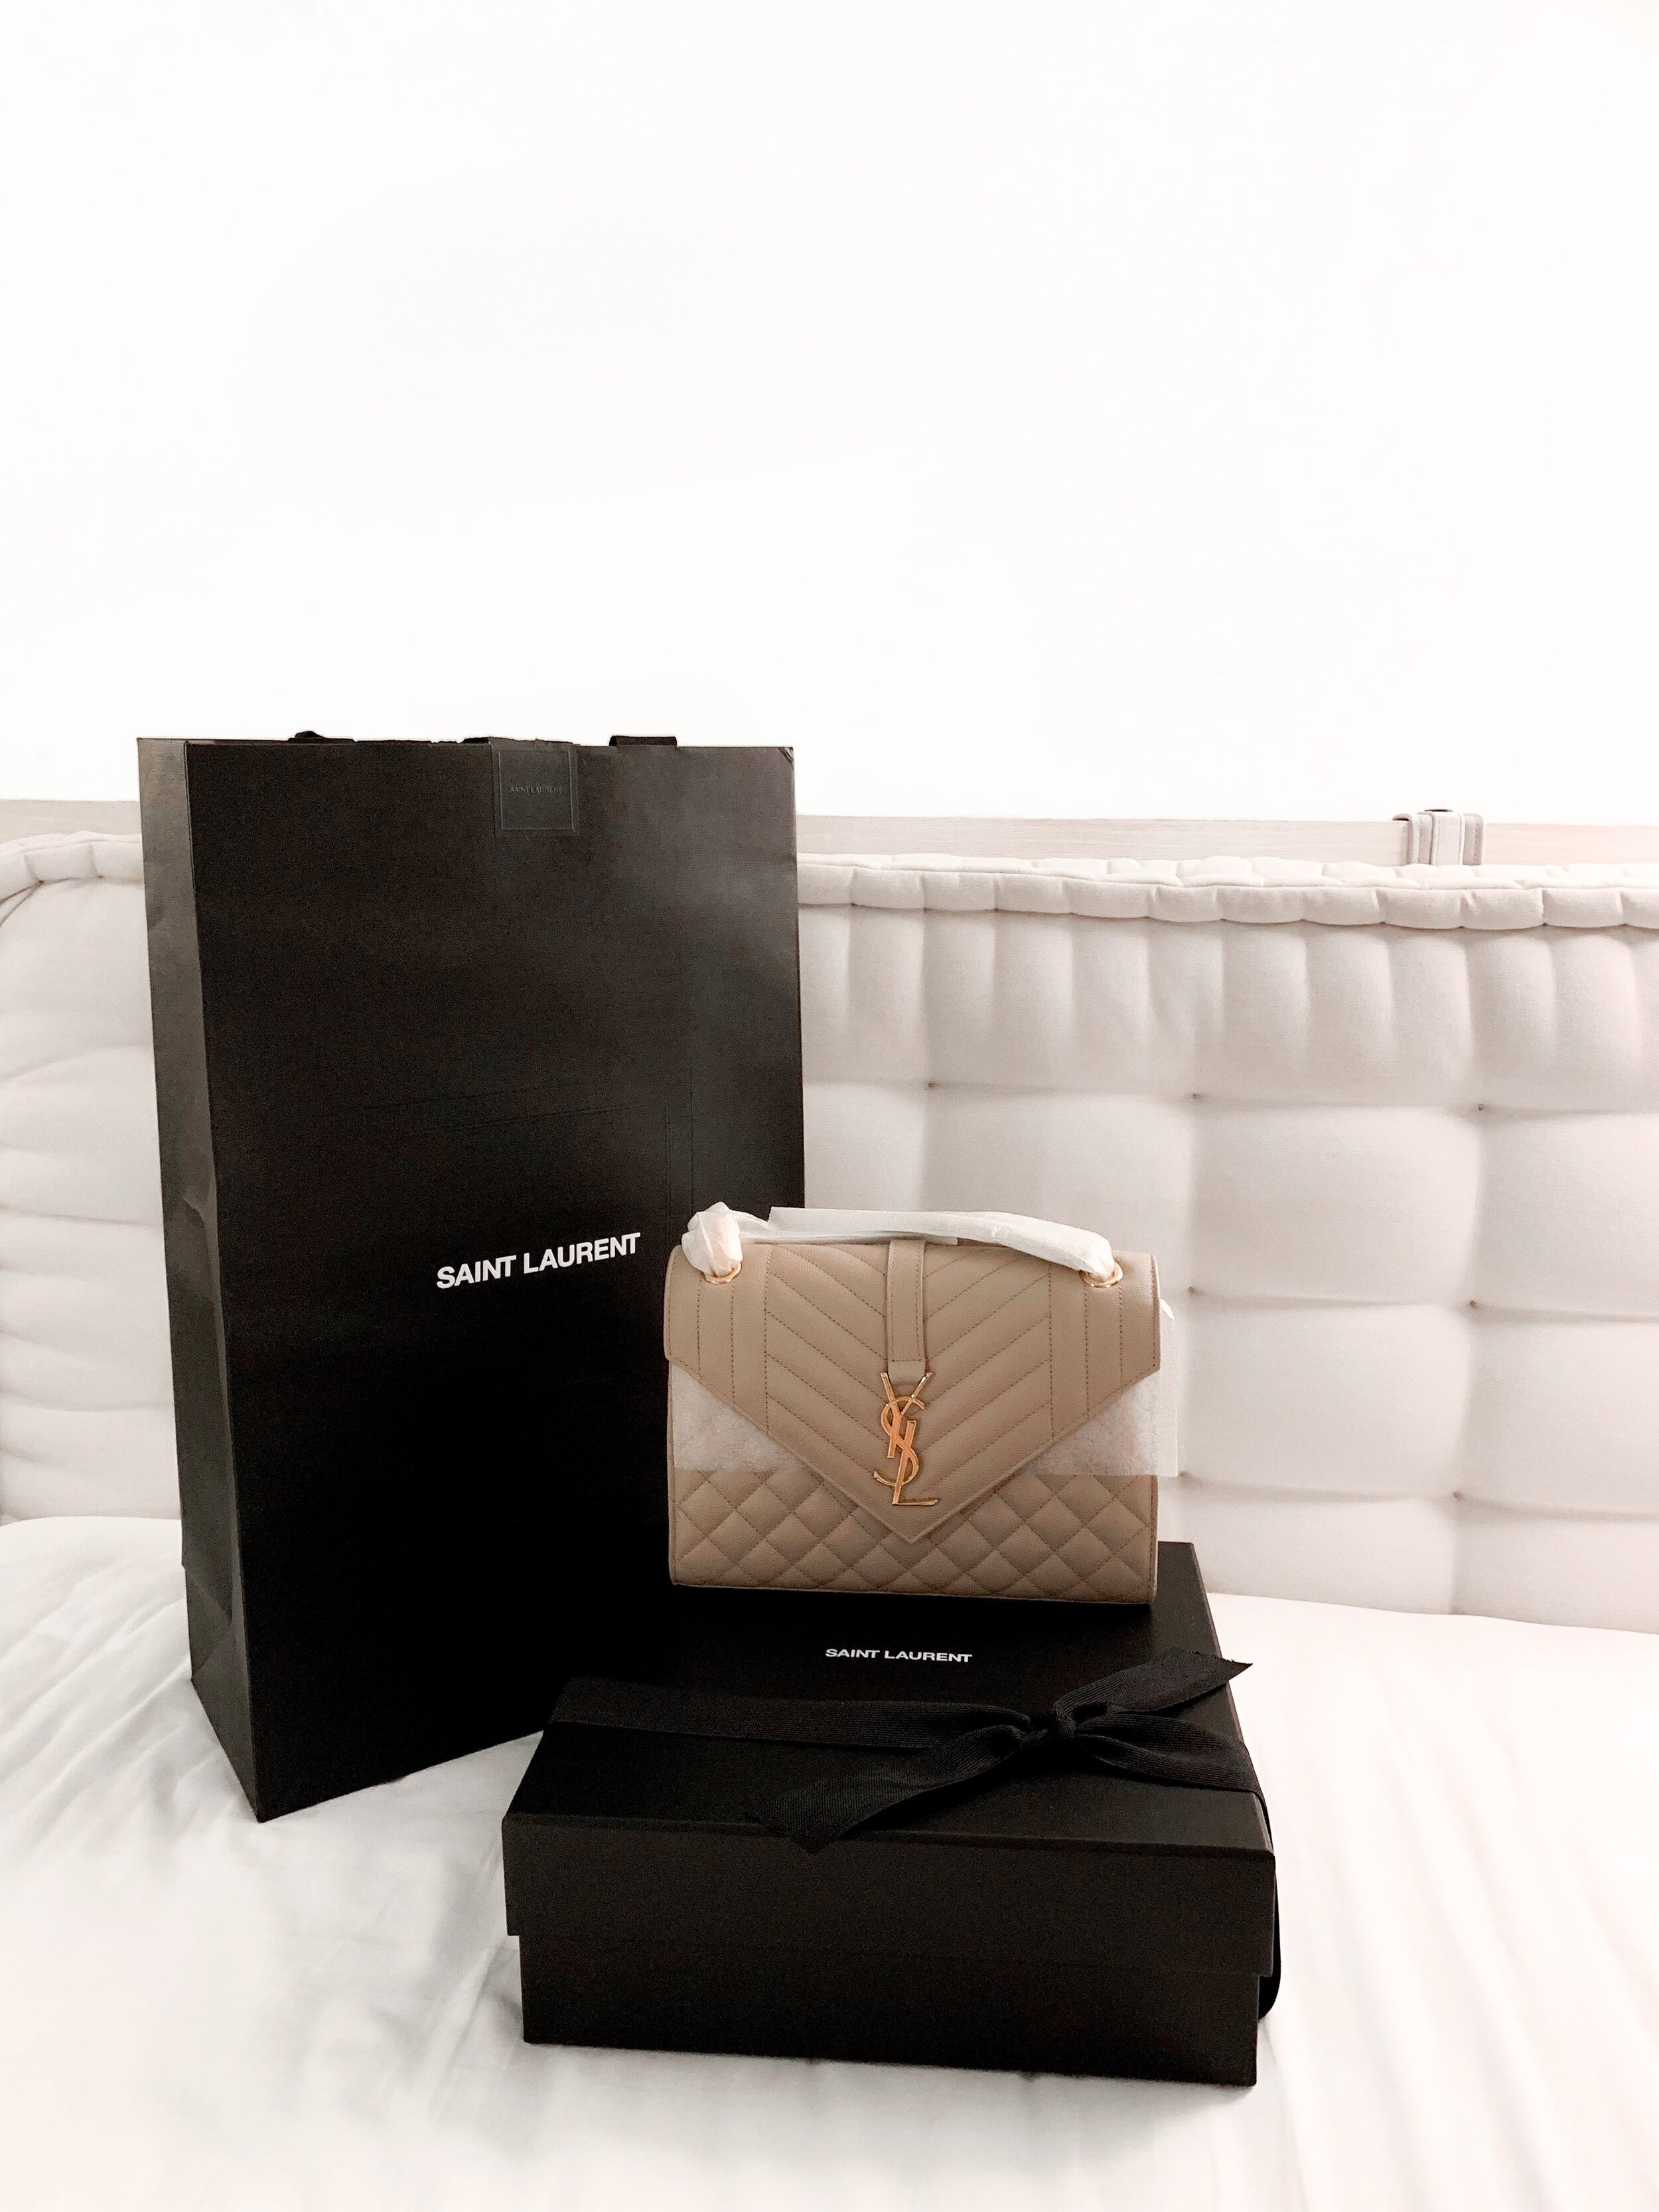 Here is a photo of the bag unboxed. You can see that the chains are carefully wrapped in this photo. The exterior size of the bag is quite similar to the Chanel Classic Flap Bag in Medium. The interior of this bag is larger than the Chanel and can fit more items. Similar to the Loulou bag, this bag can be worn three ways: 1) on the shoulder 2) crossbody 3) double-chained on the shoulder. As of the moment, I look for this versatility in a bag. There is also a flap in the back, like the Chanel bag.